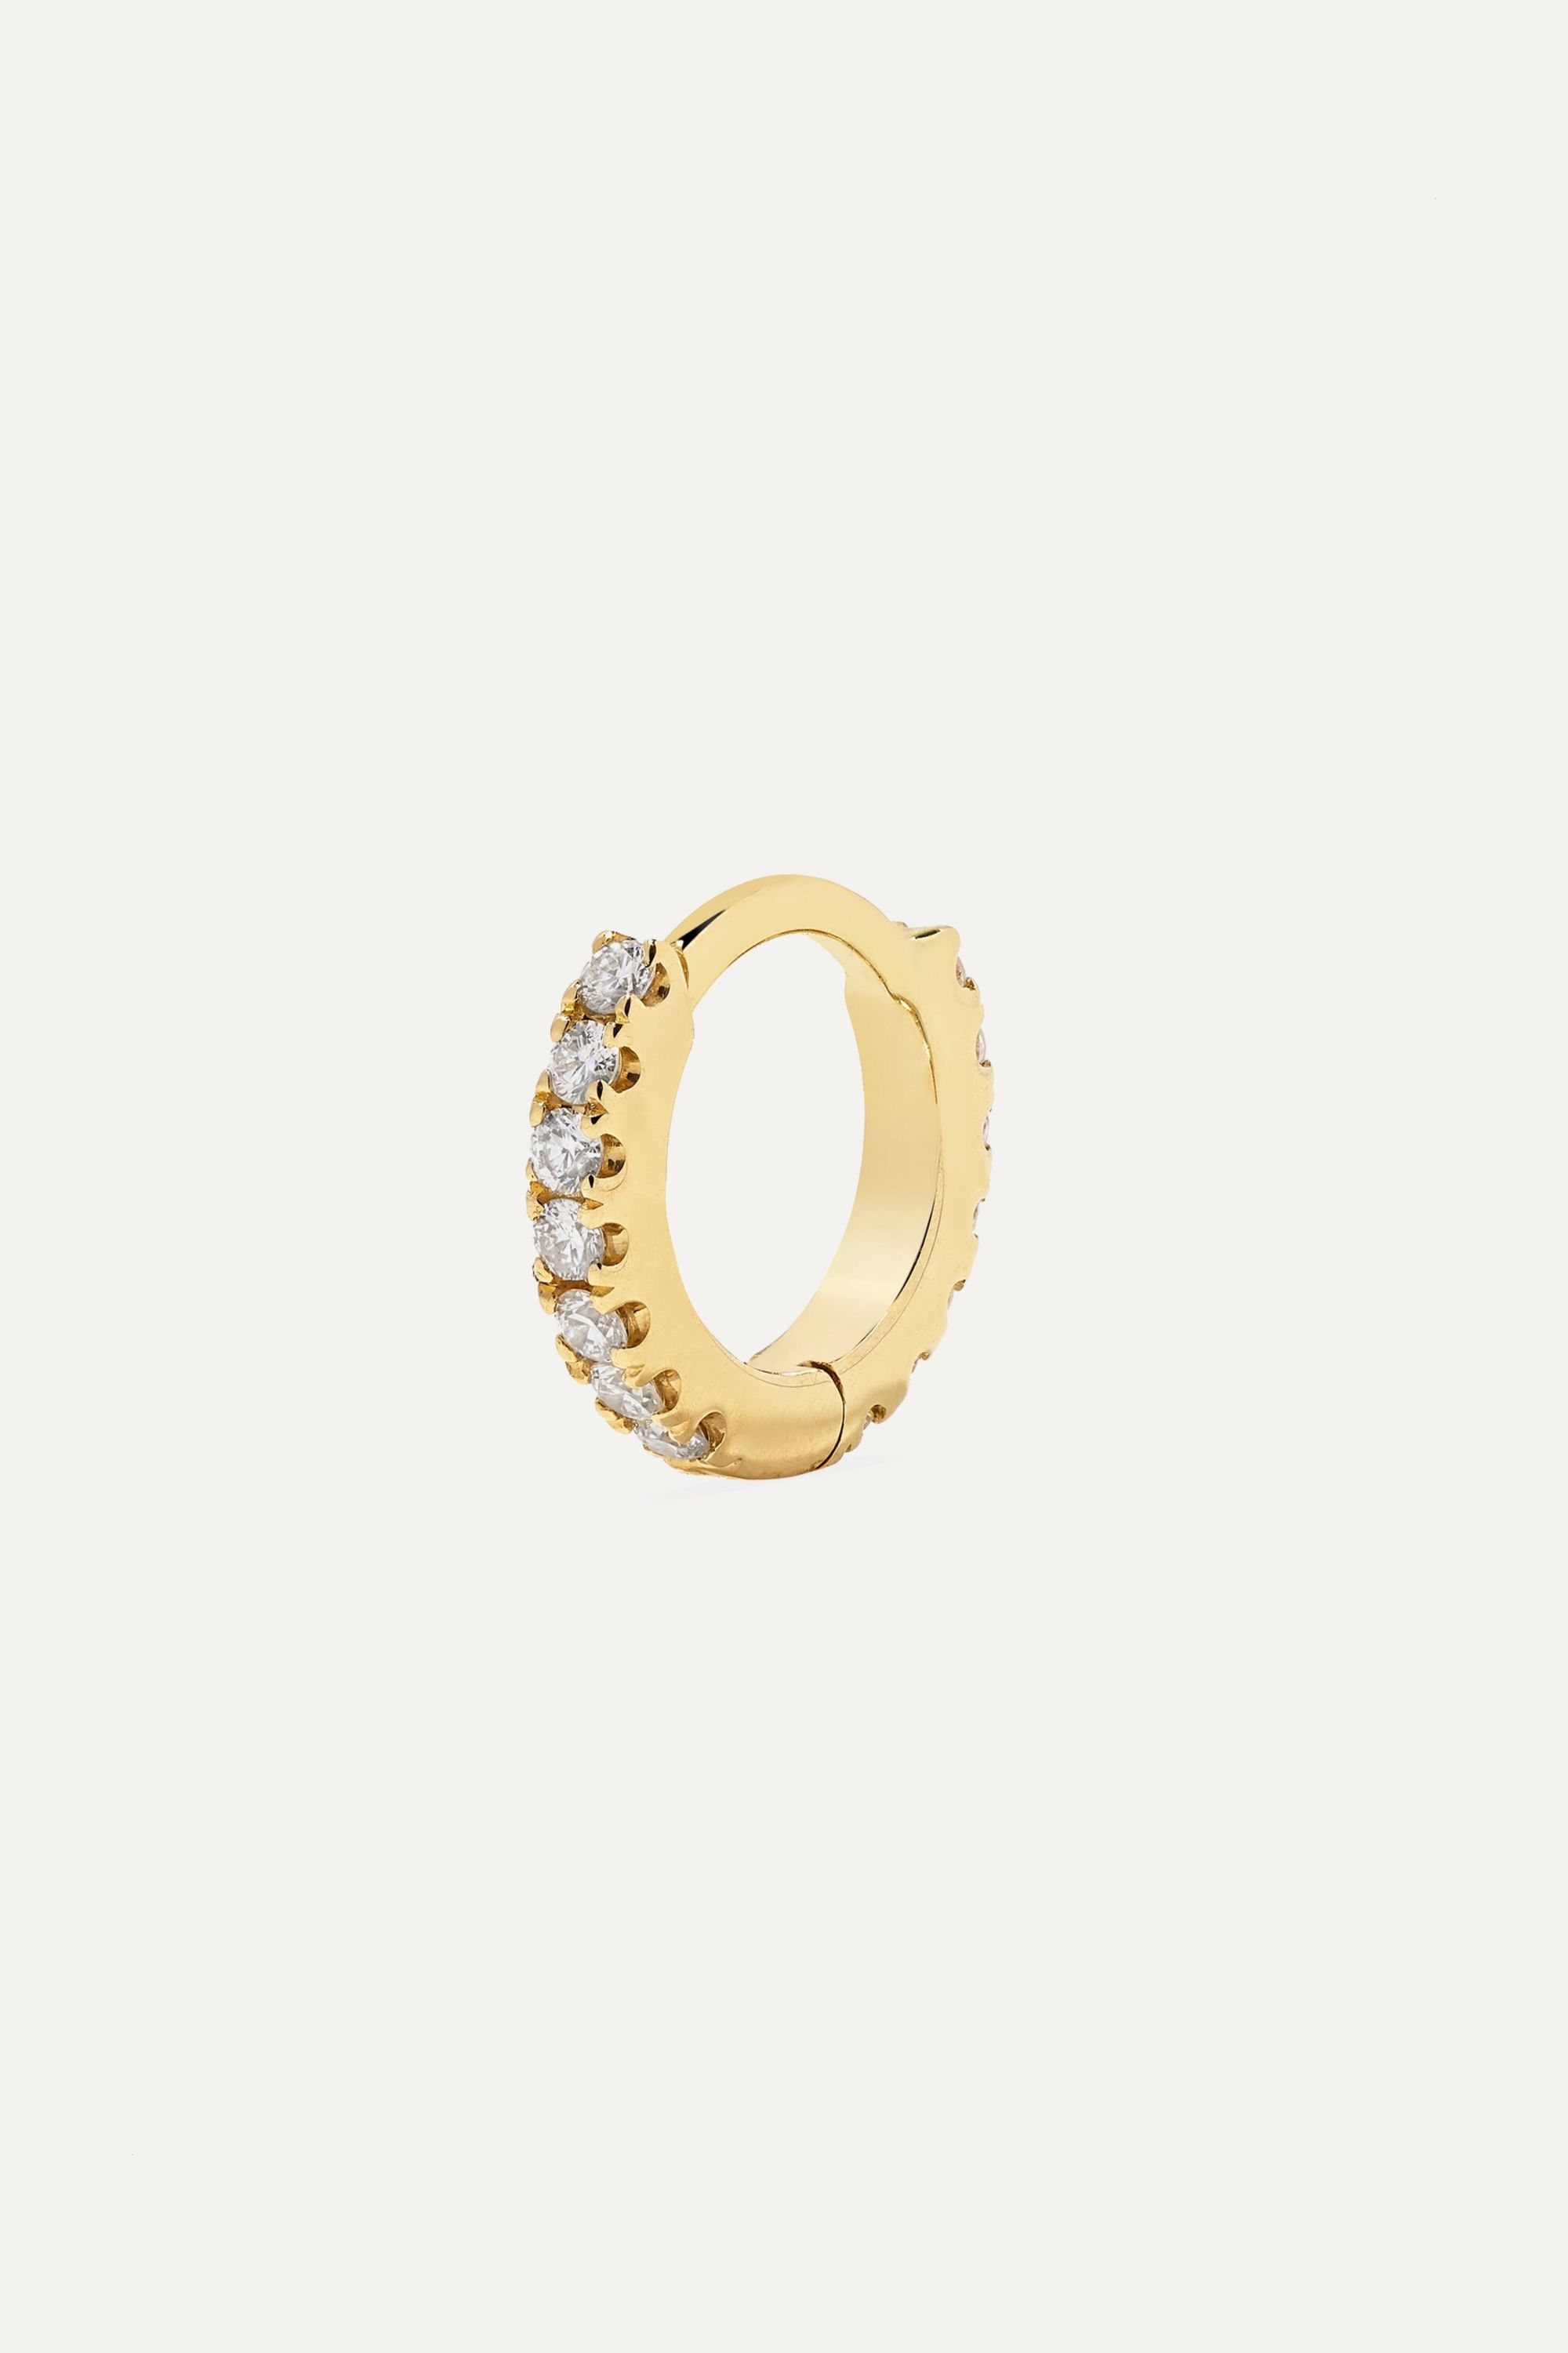 Maria Tash Mini 18-karat gold diamond hoop earring